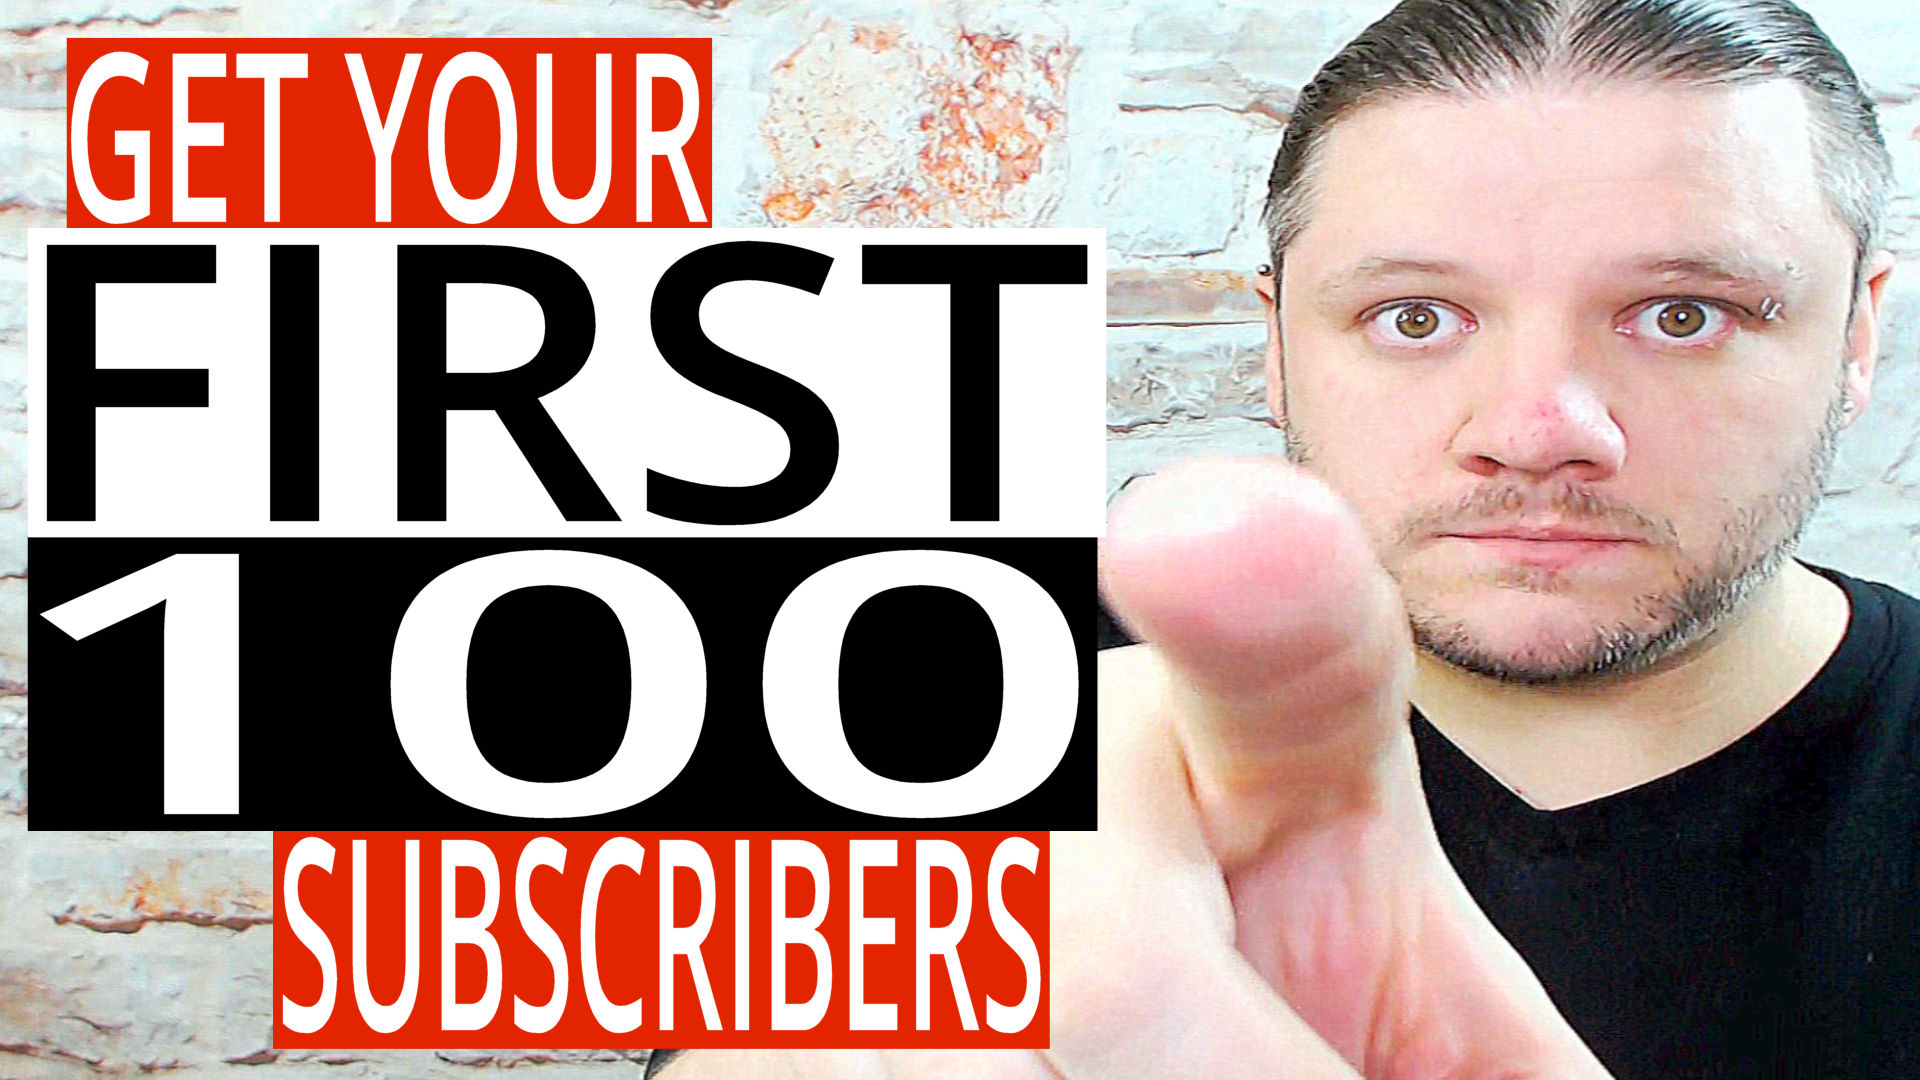 How To Get Your First 100 YouTube Subscribers,how to get 100 subscribers on youtube,youtube subscribers,how to get your first 100 subscribers on youtube fast,How To Get Your First 100 YouTube Subscribers 2018,How To Get Your First 100 Subscribers on YouTube 2018,100 youtube subscribers,subscribers on youtube,how to get your first 100 subscribers,how to get your first 100 subscribers on youtube,first 100 subscribers on youtube,get your first 1000 subscribers,alanspicer,sub